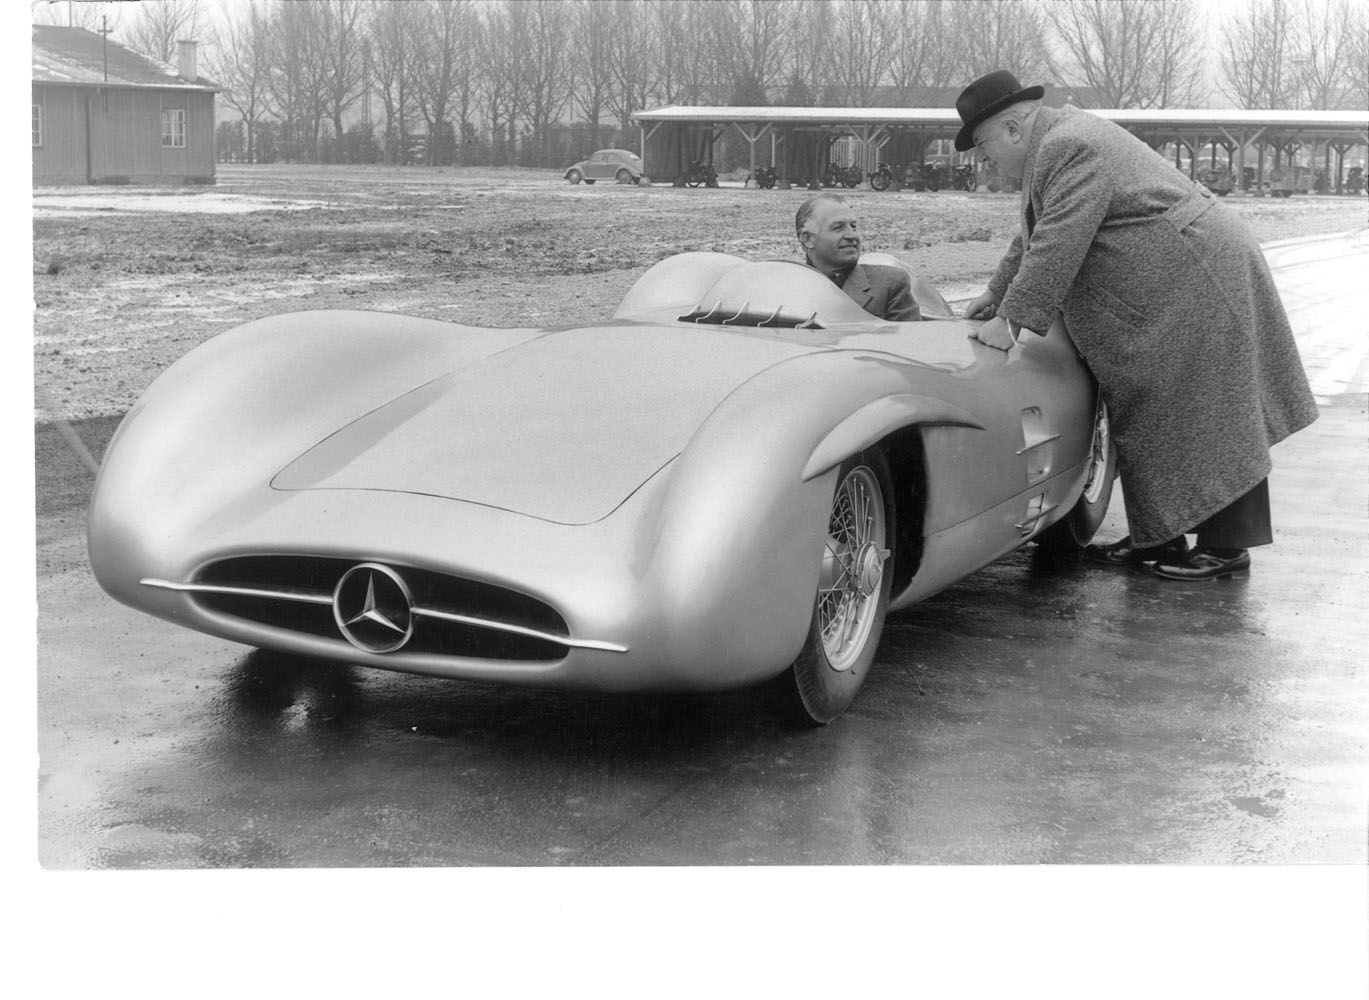 Mercedes Benz History Of Cars >> Mercedes Benz History And Articles Image Gallery Scott Grundfor